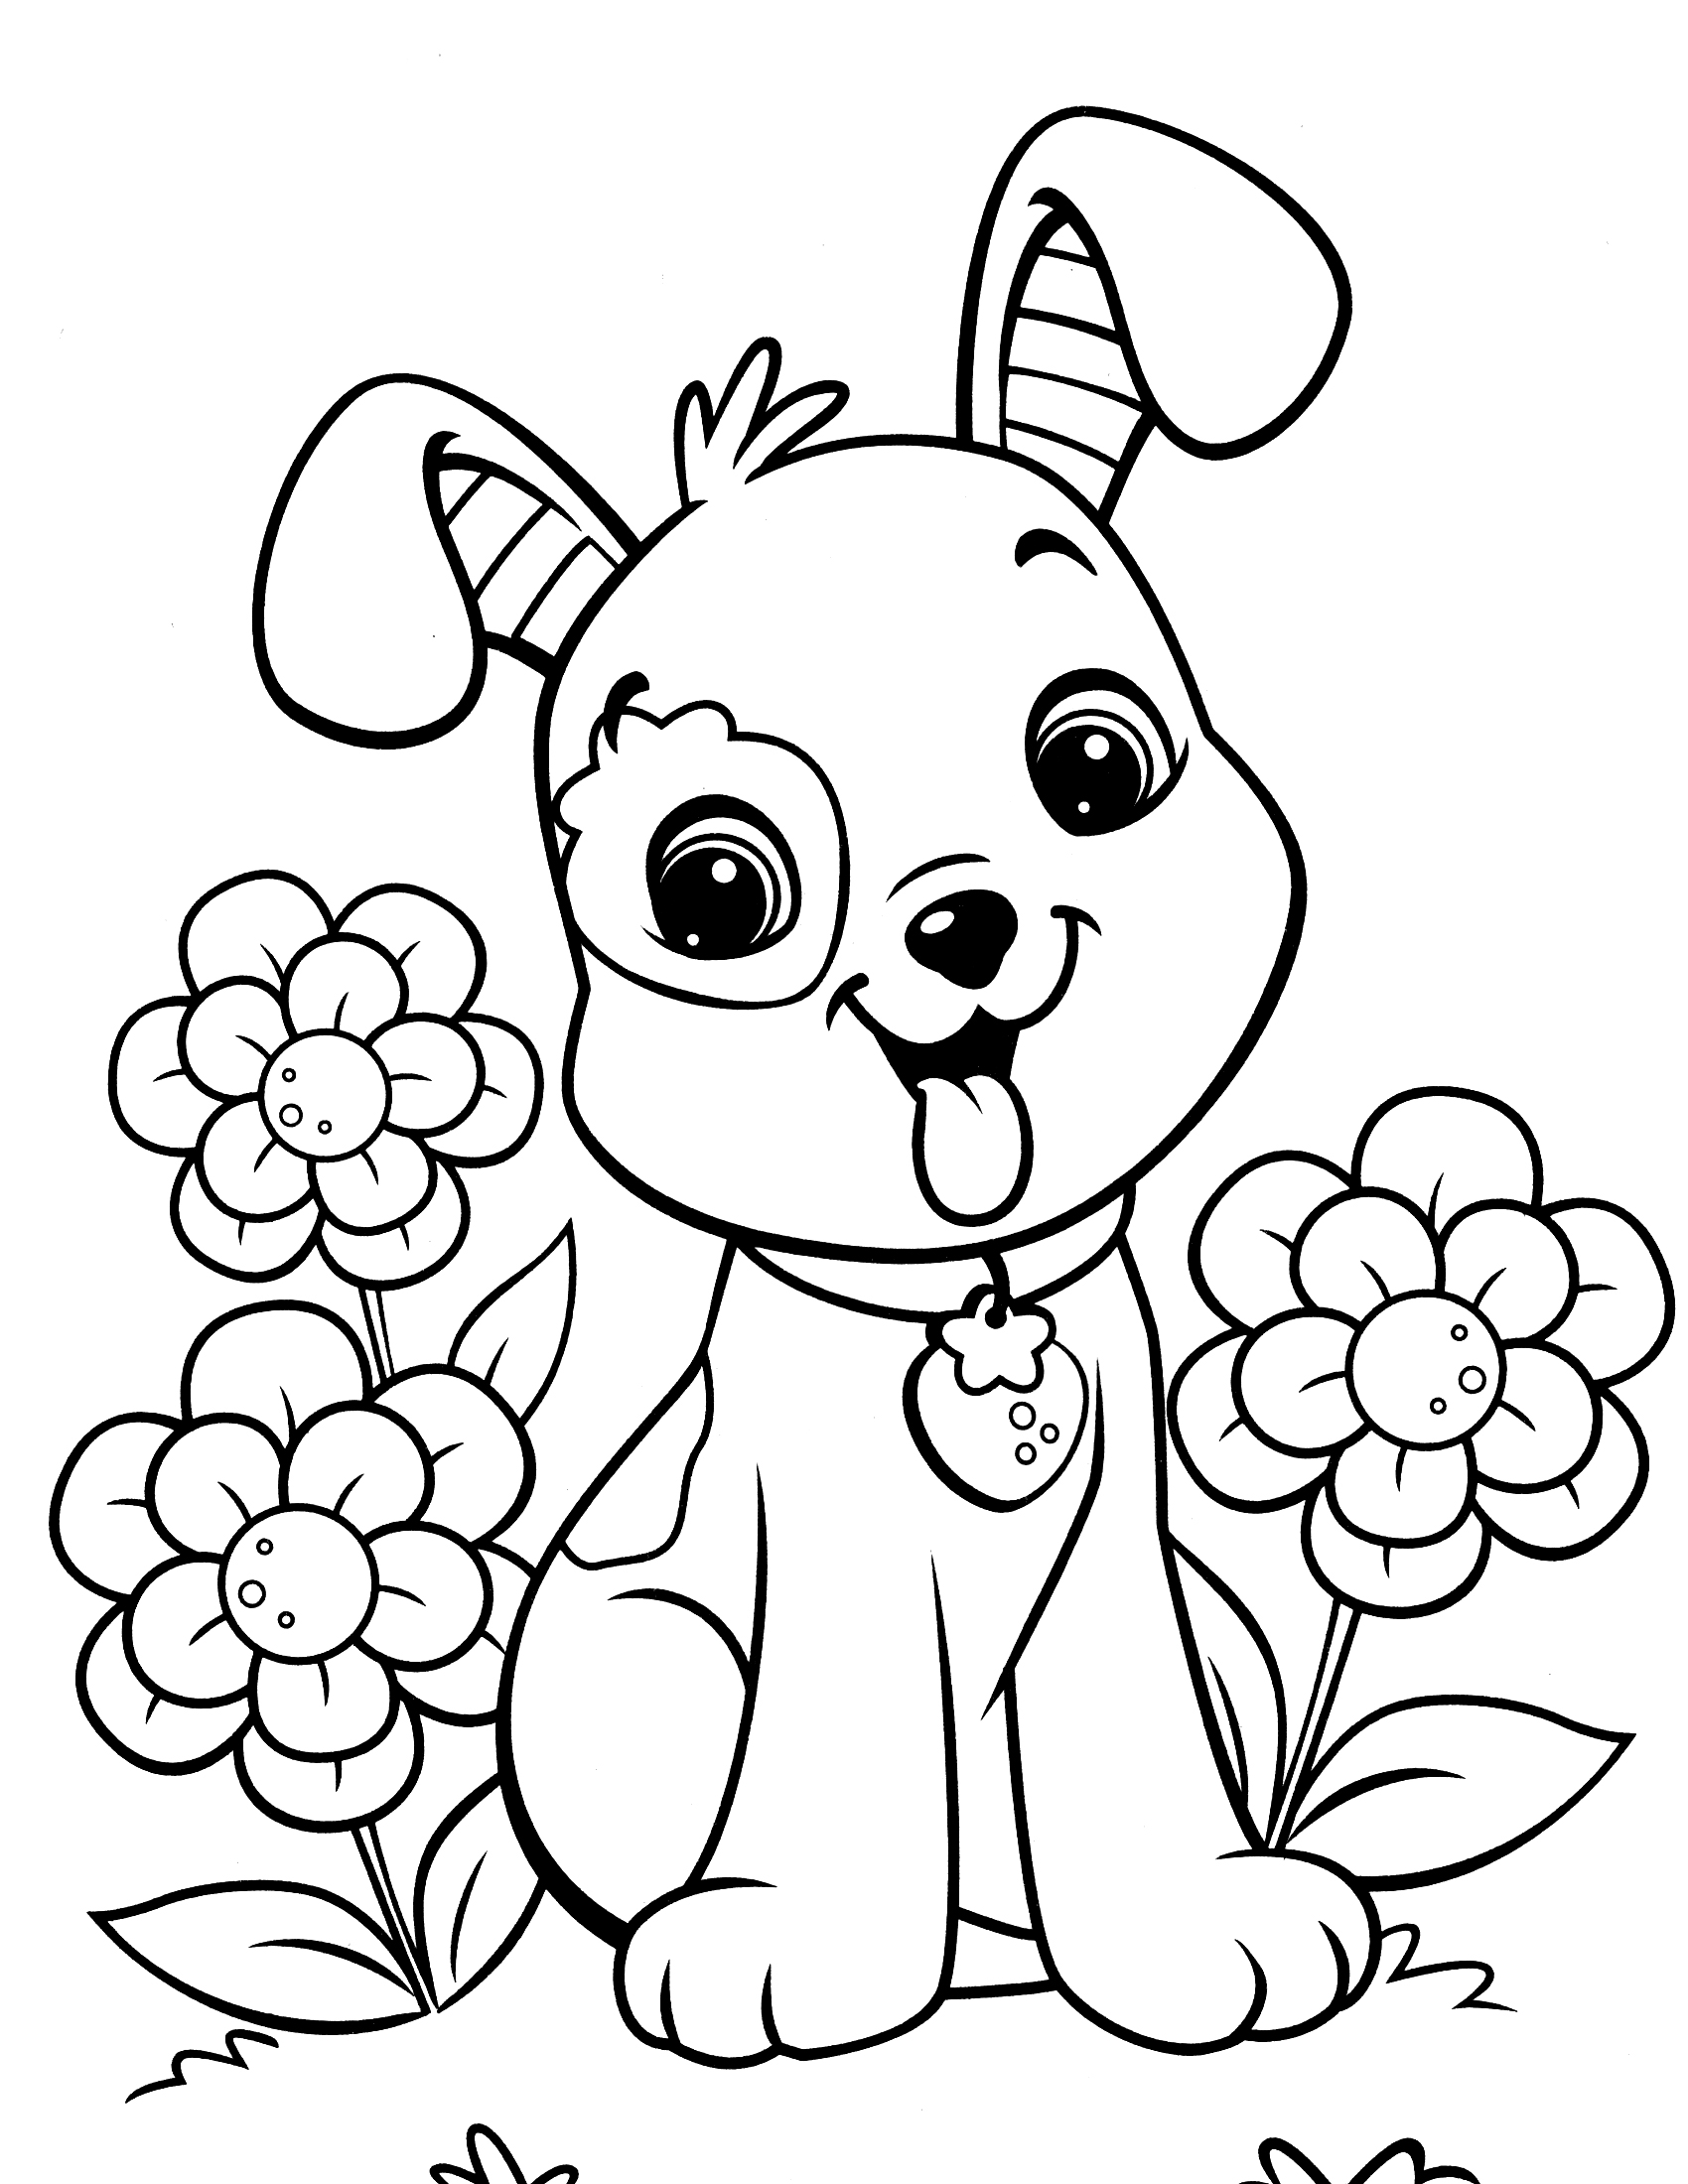 coloring pictures of baby dogs cartoon dog coloring page in 2020 puppy cartoon puppy pictures of coloring dogs baby